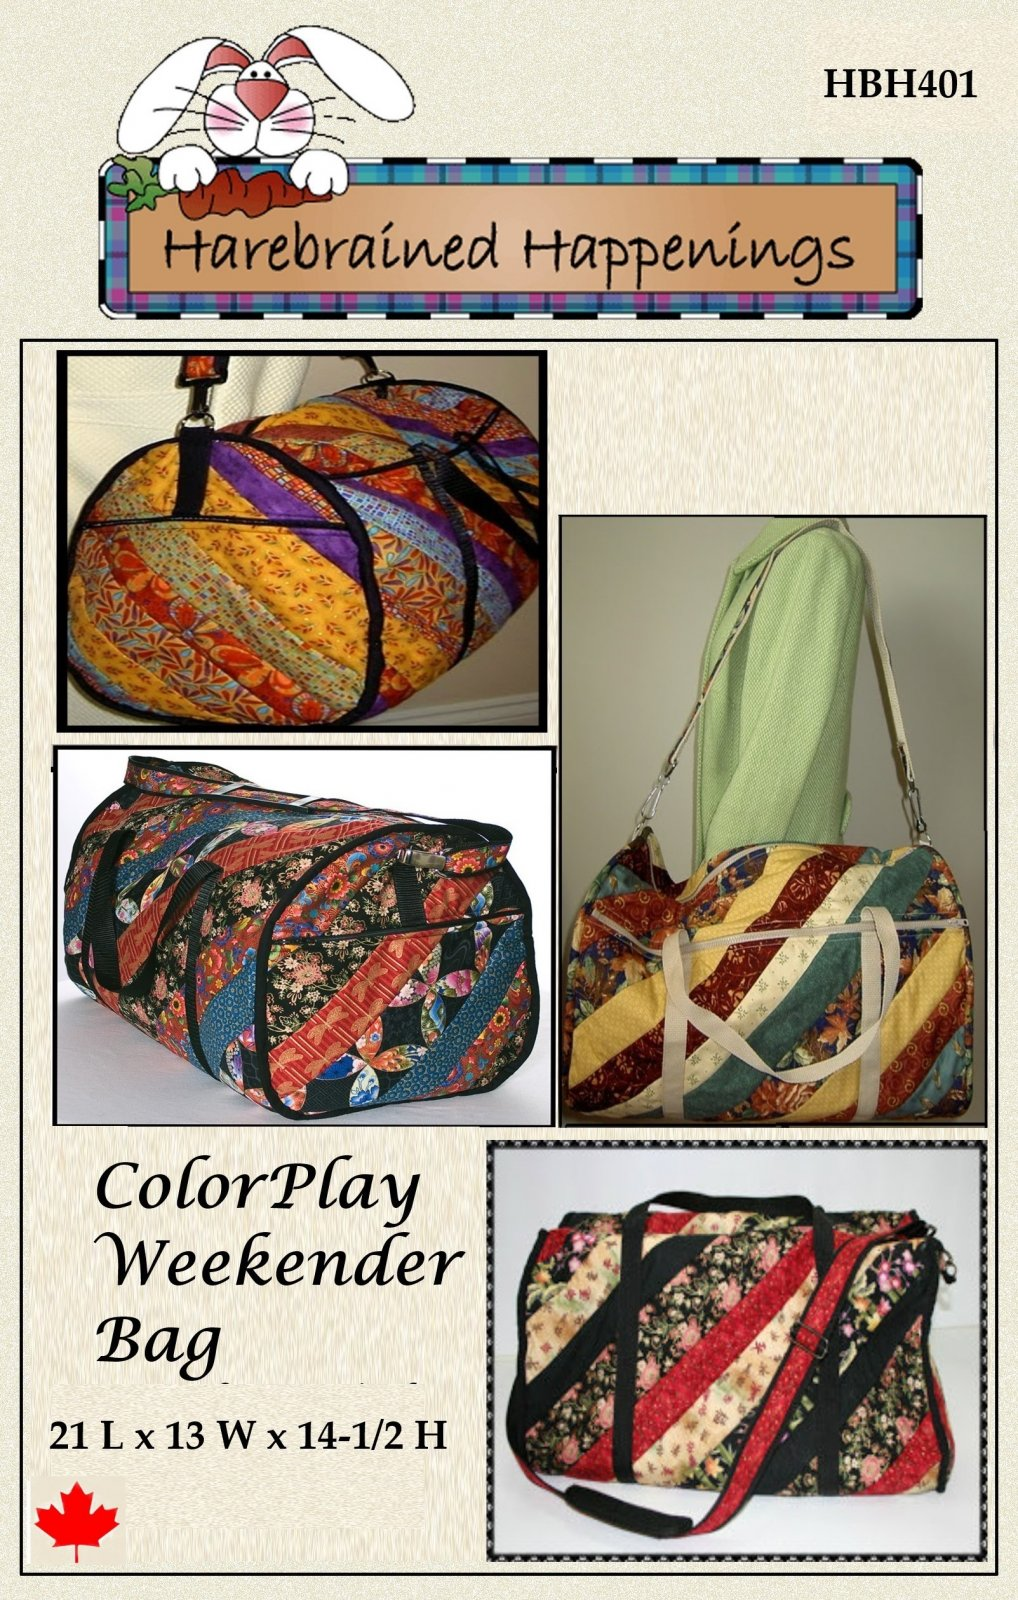 HBH401 ColorPlay Weekender Bag